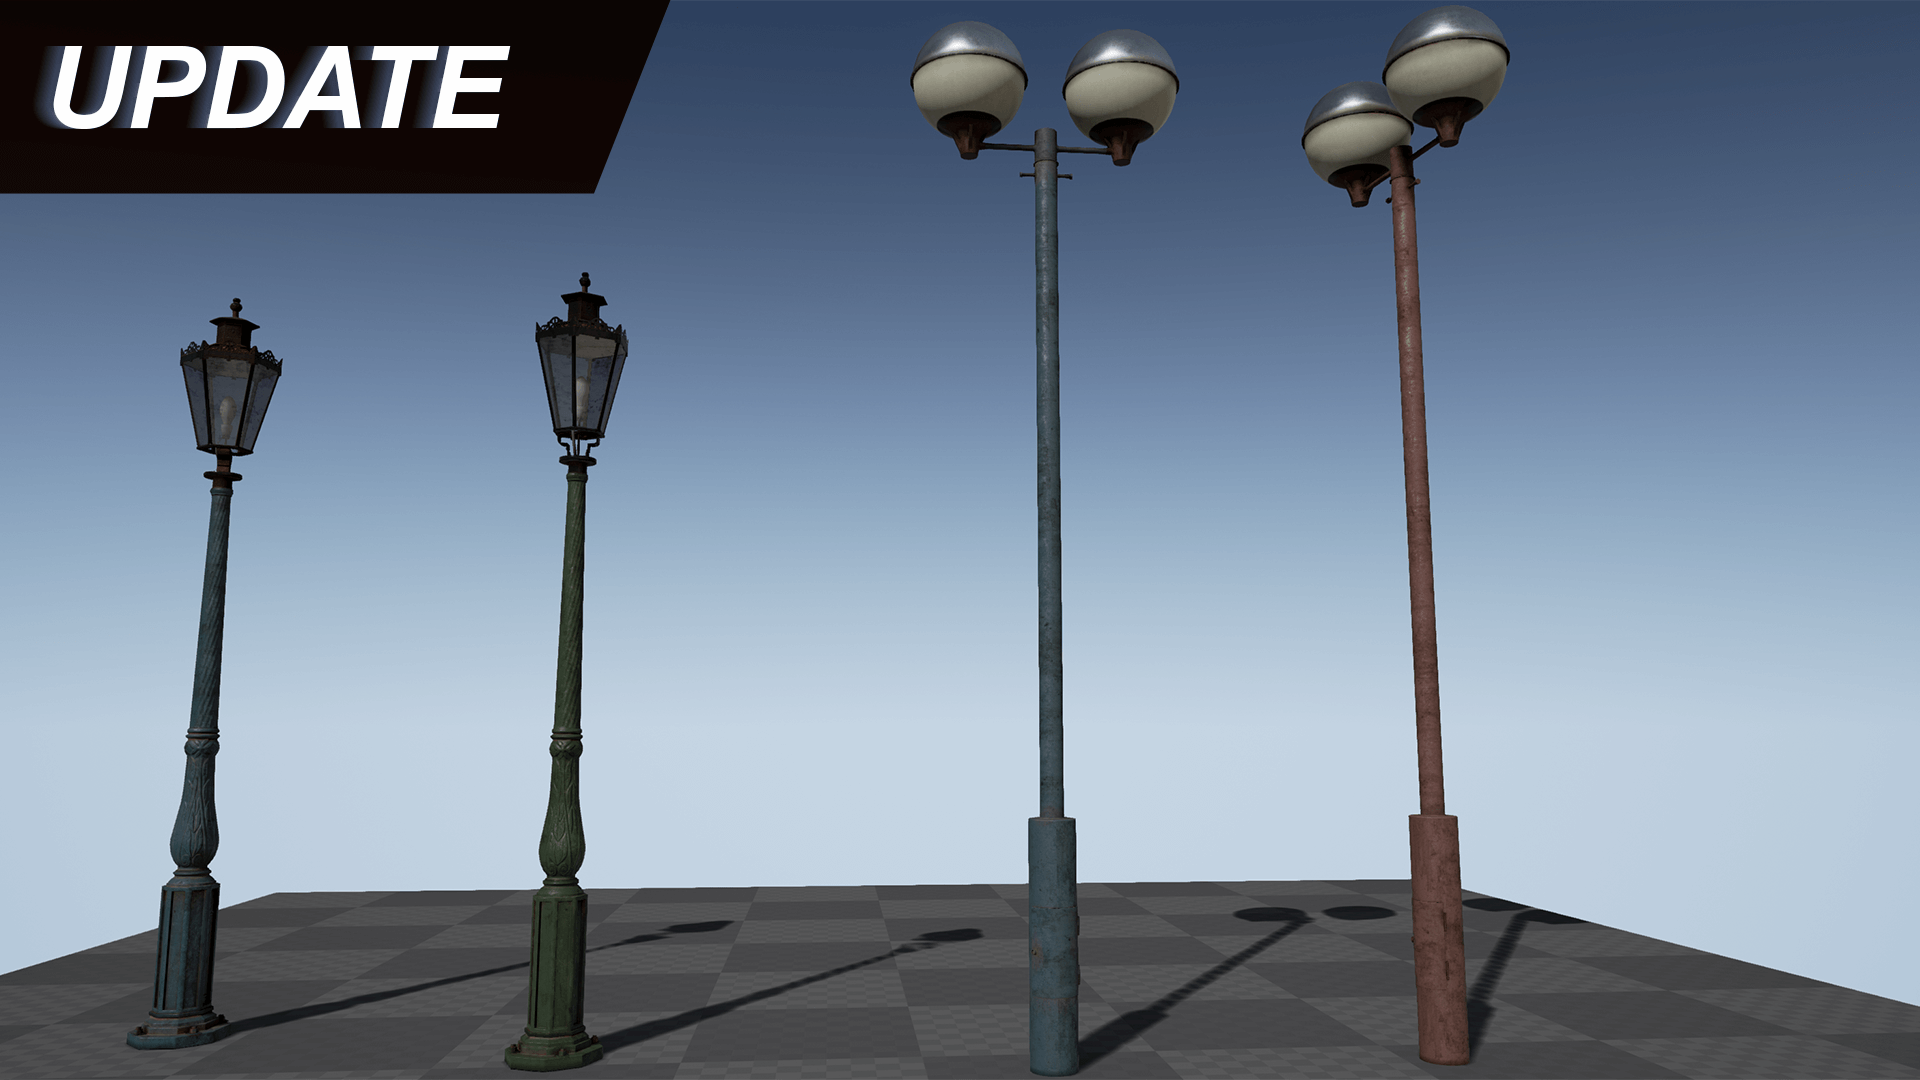 Old Streetlights Pack by Sipi1989 in Props - UE4 Marketplace for street lamp texture  570bof